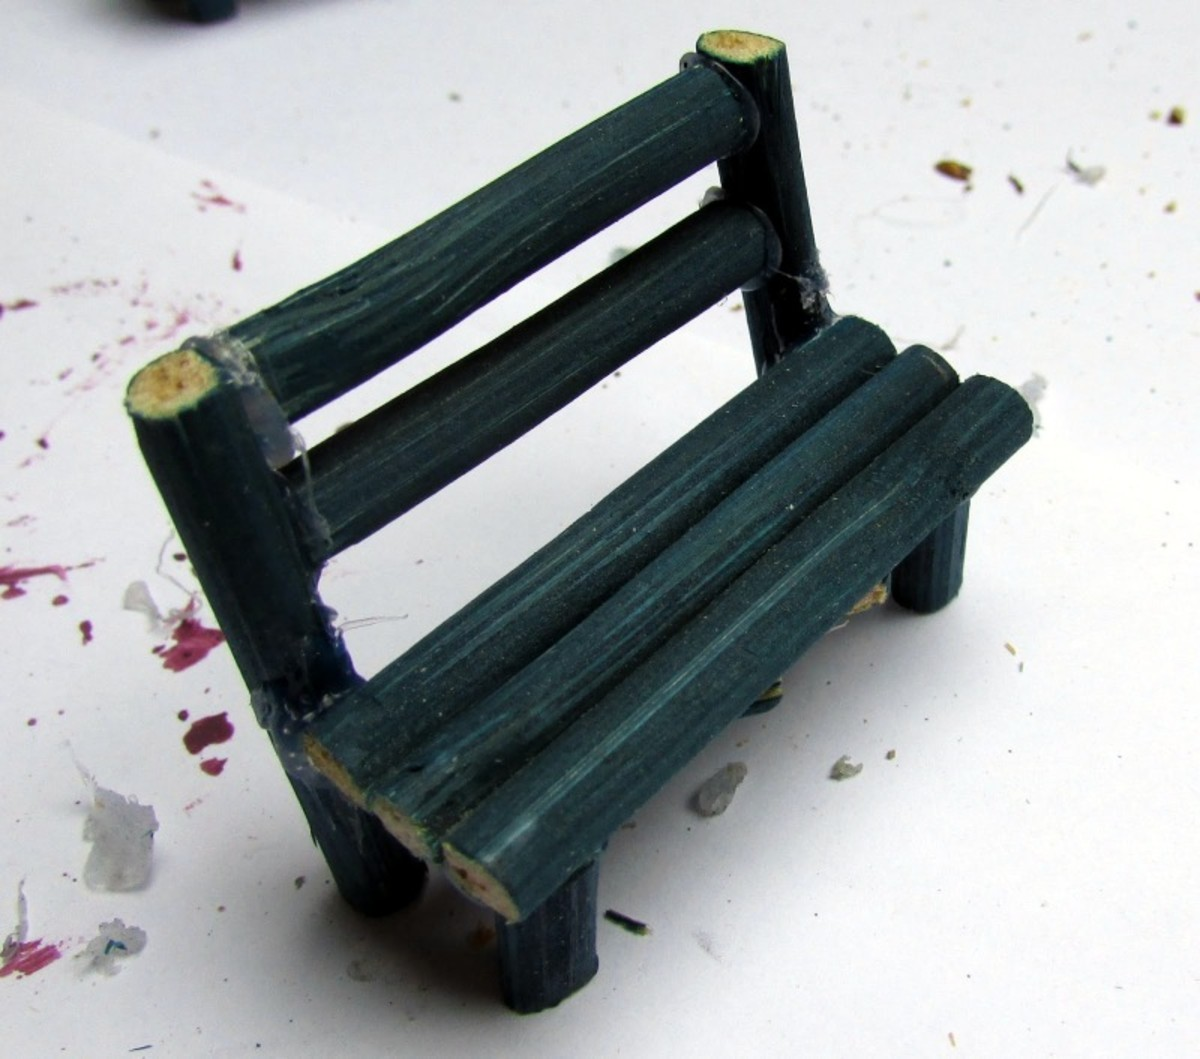 How to make a miniature bench for a fairy garden